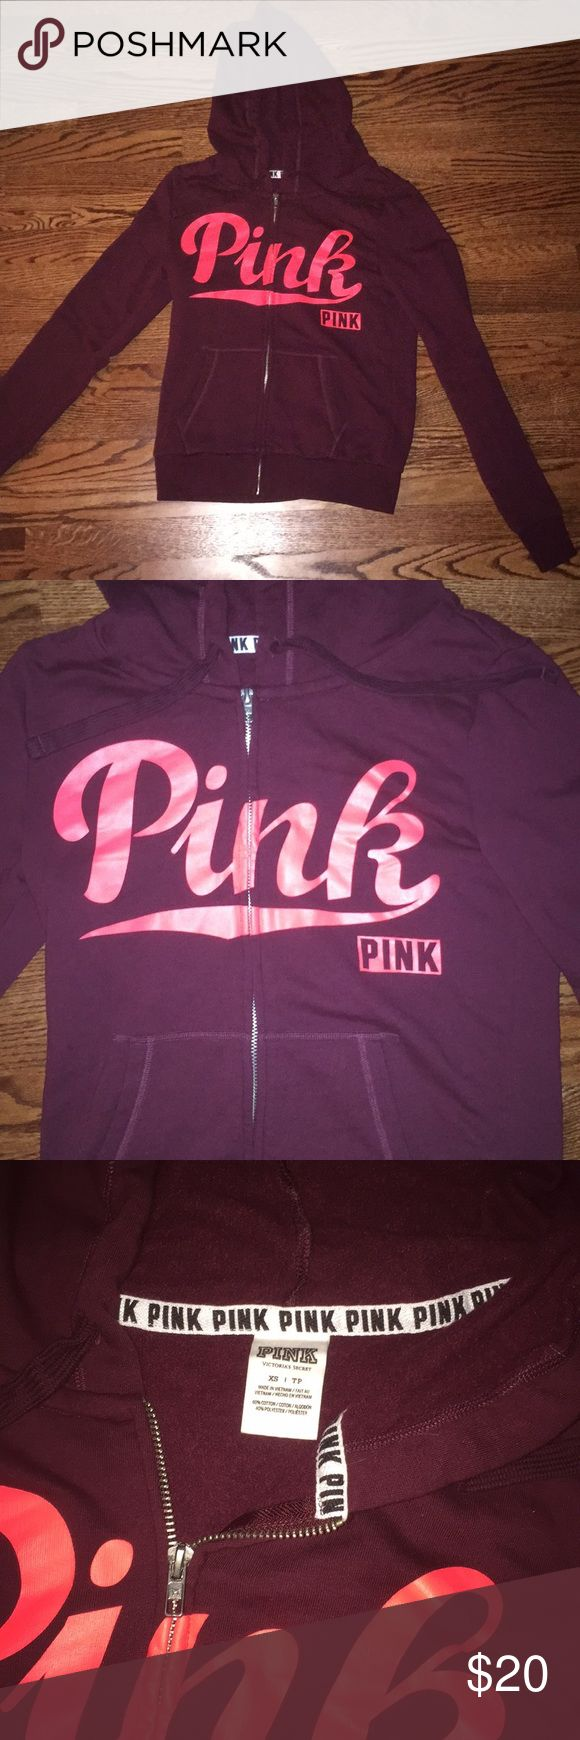 Victoria's Secret PINK zip-up- size XS Maroon and bright coral Victoria's Secret PINK zip-up in a size XS. Only worn a handful of times! PINK Victoria's Secret Jackets & Coats